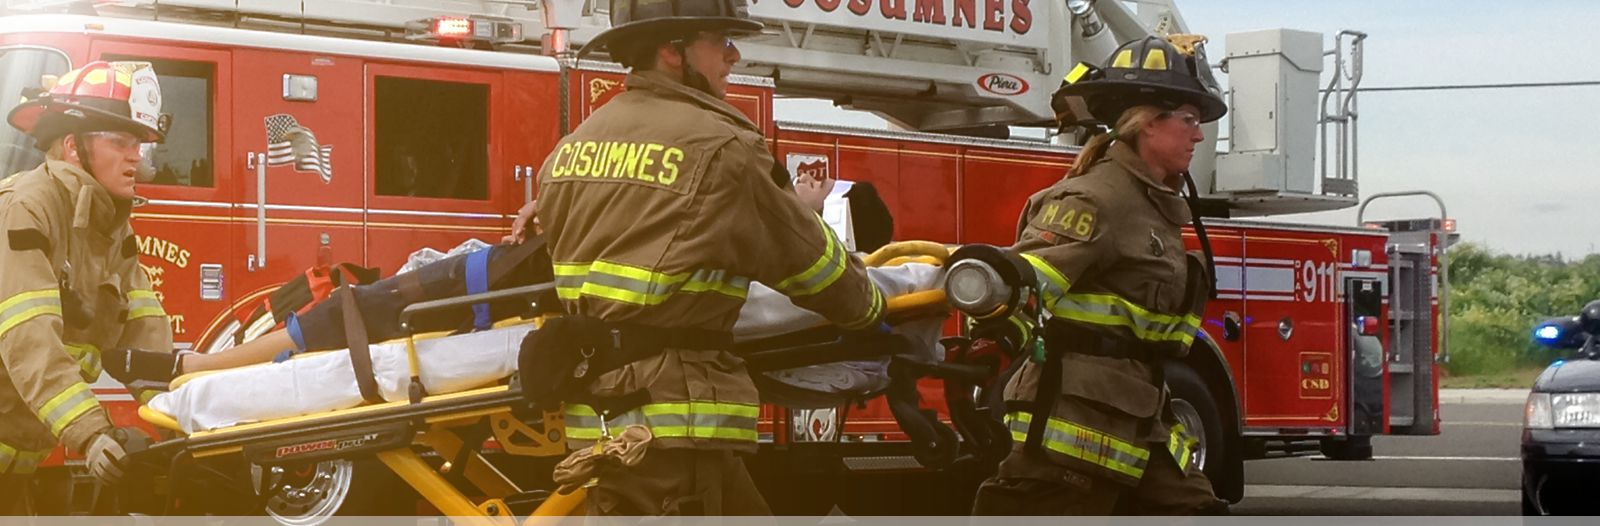 Cosumnes Fire Department Partners With The Fire Data Lab